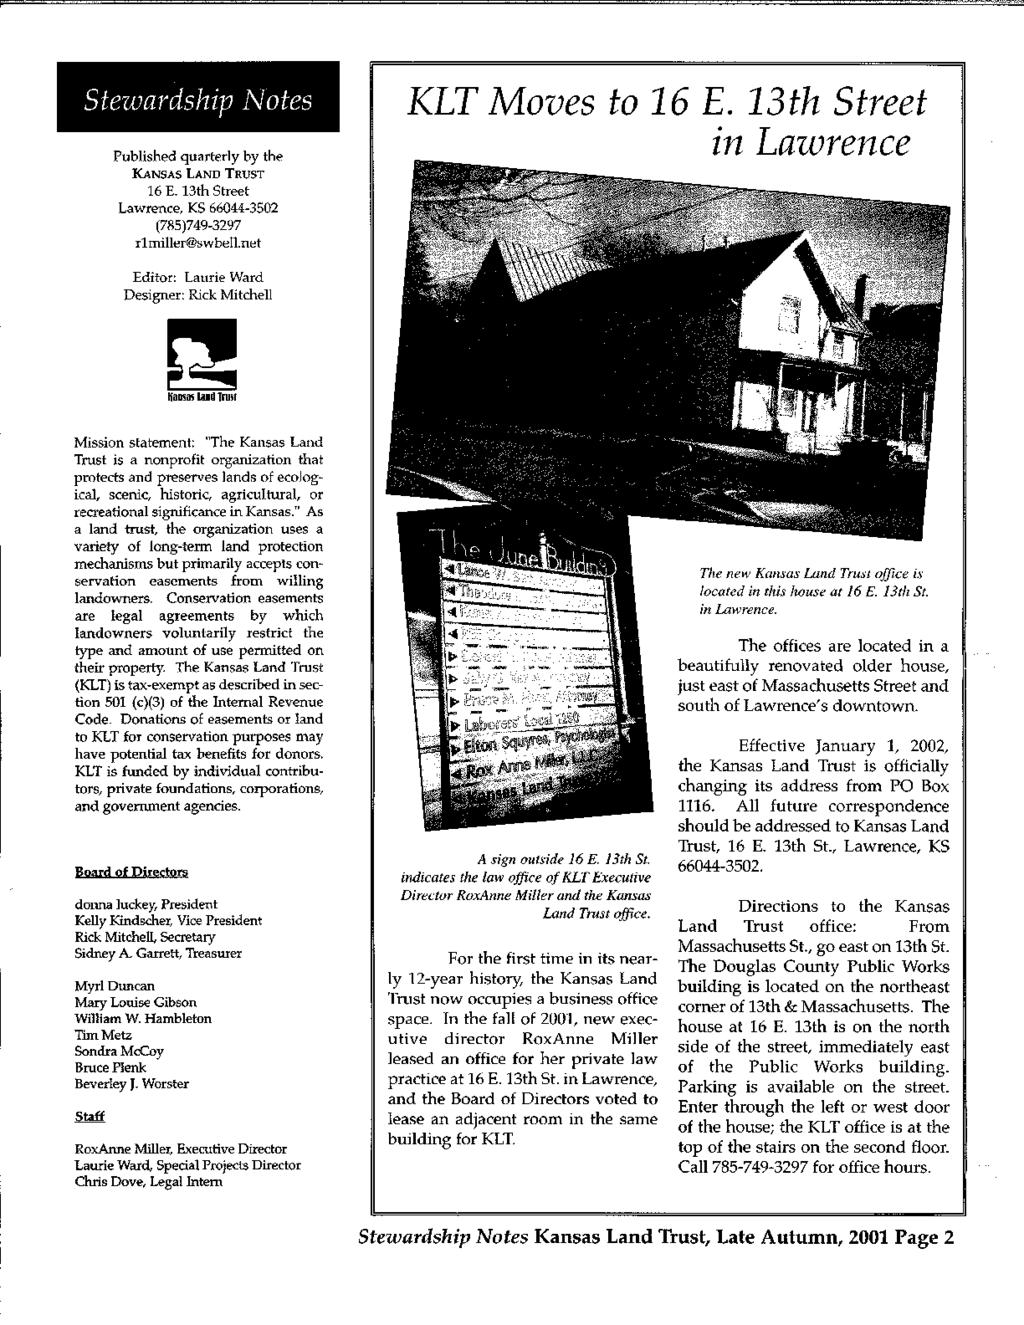 =. Published quarterly by the KANSAS LAND TRUST 16 E. 13th Street Lawrence, KS 66044-3502 (785)749-3297 r1miller@swbell.net Editor: Laurie Ward Designer: Rick Mitchell KLT Moves to 16 E.